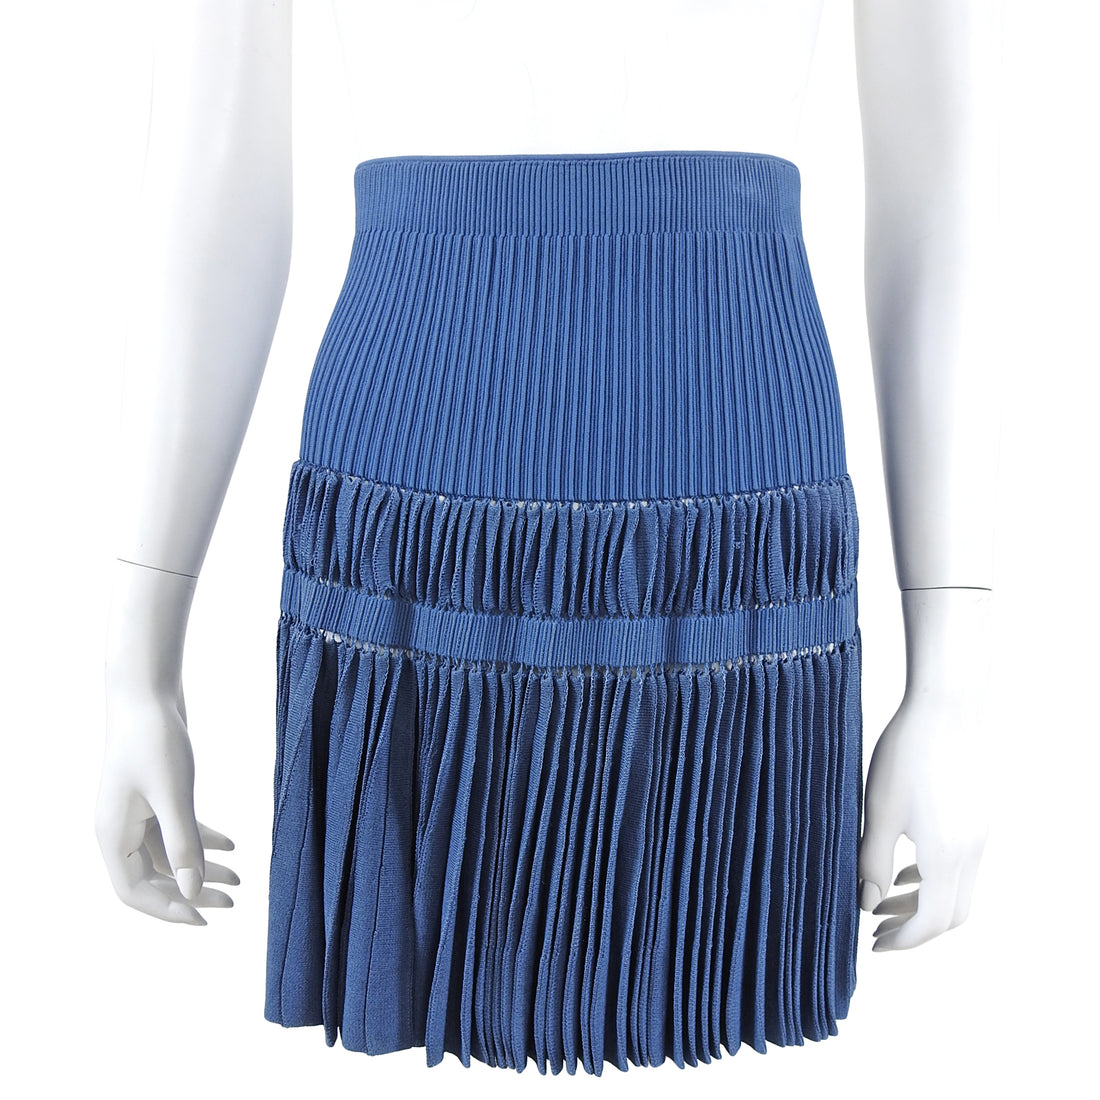 Alaia Periwinkle Blue Knit Mini Skirt - XS / 0